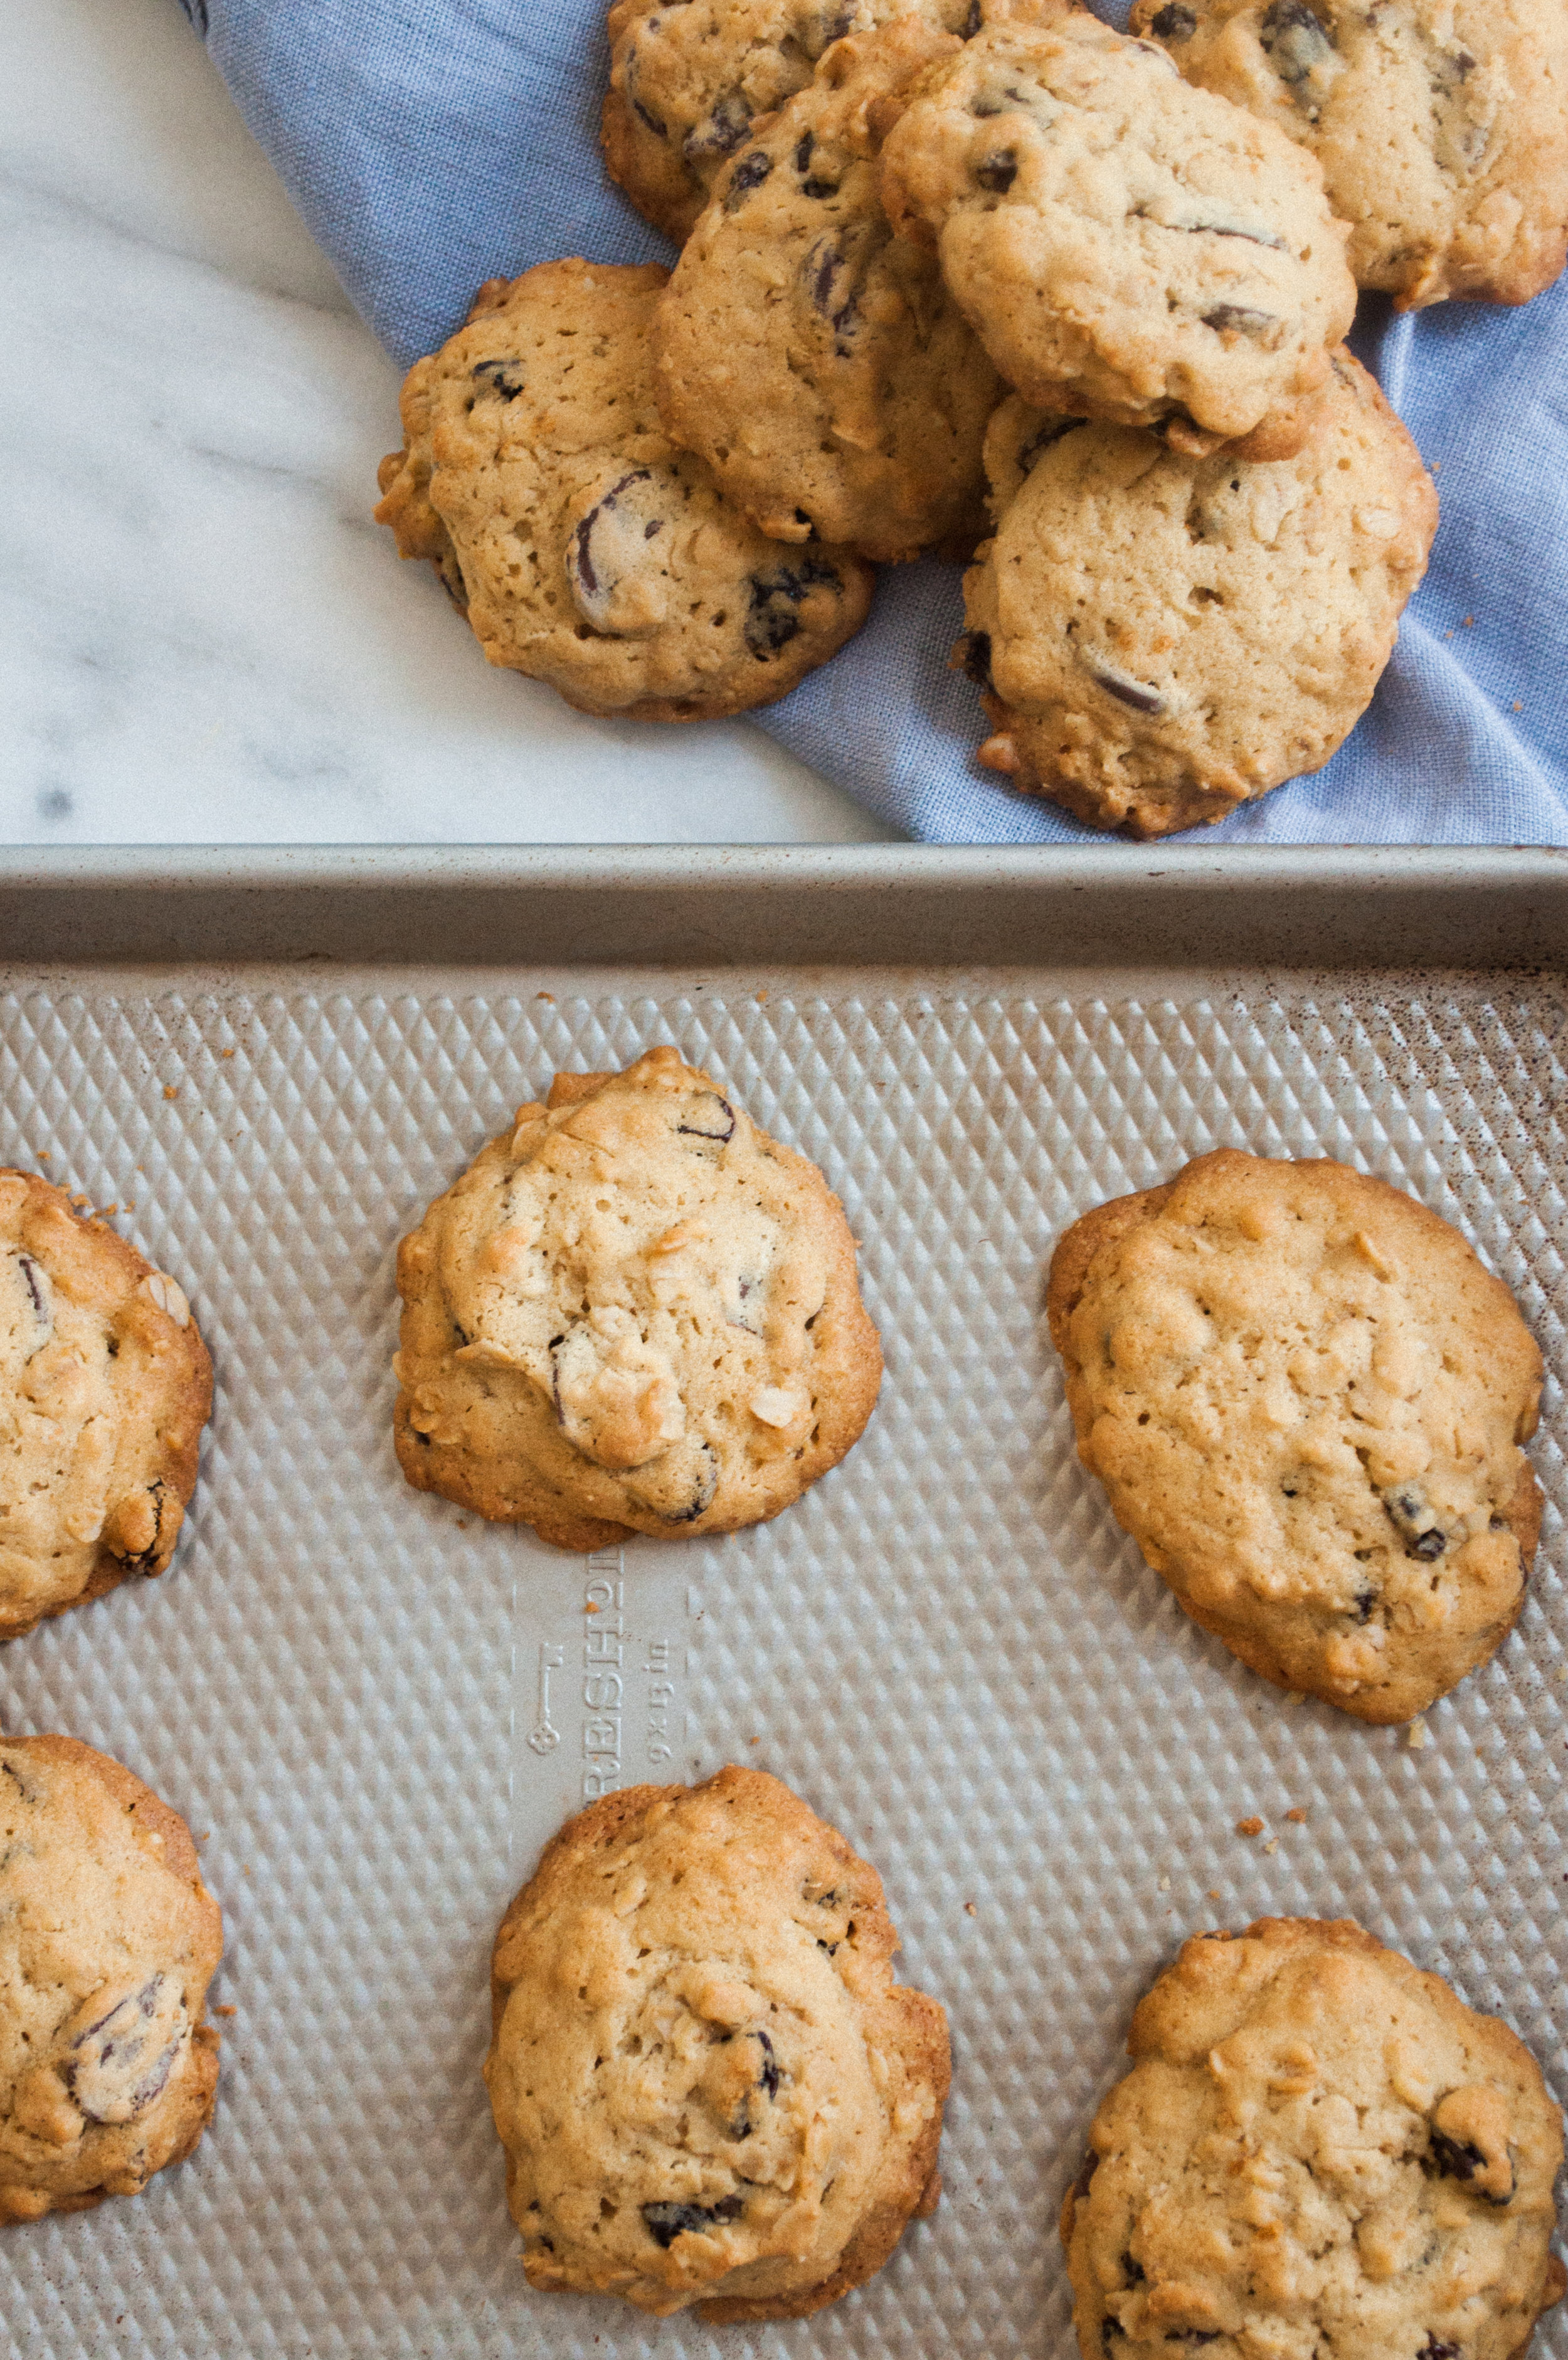 Summerfield Delight by Meg Summerfield   Review of Small Victories Cookbook by Julia Turshen   Chocolate Chip Oatmeal Cookies